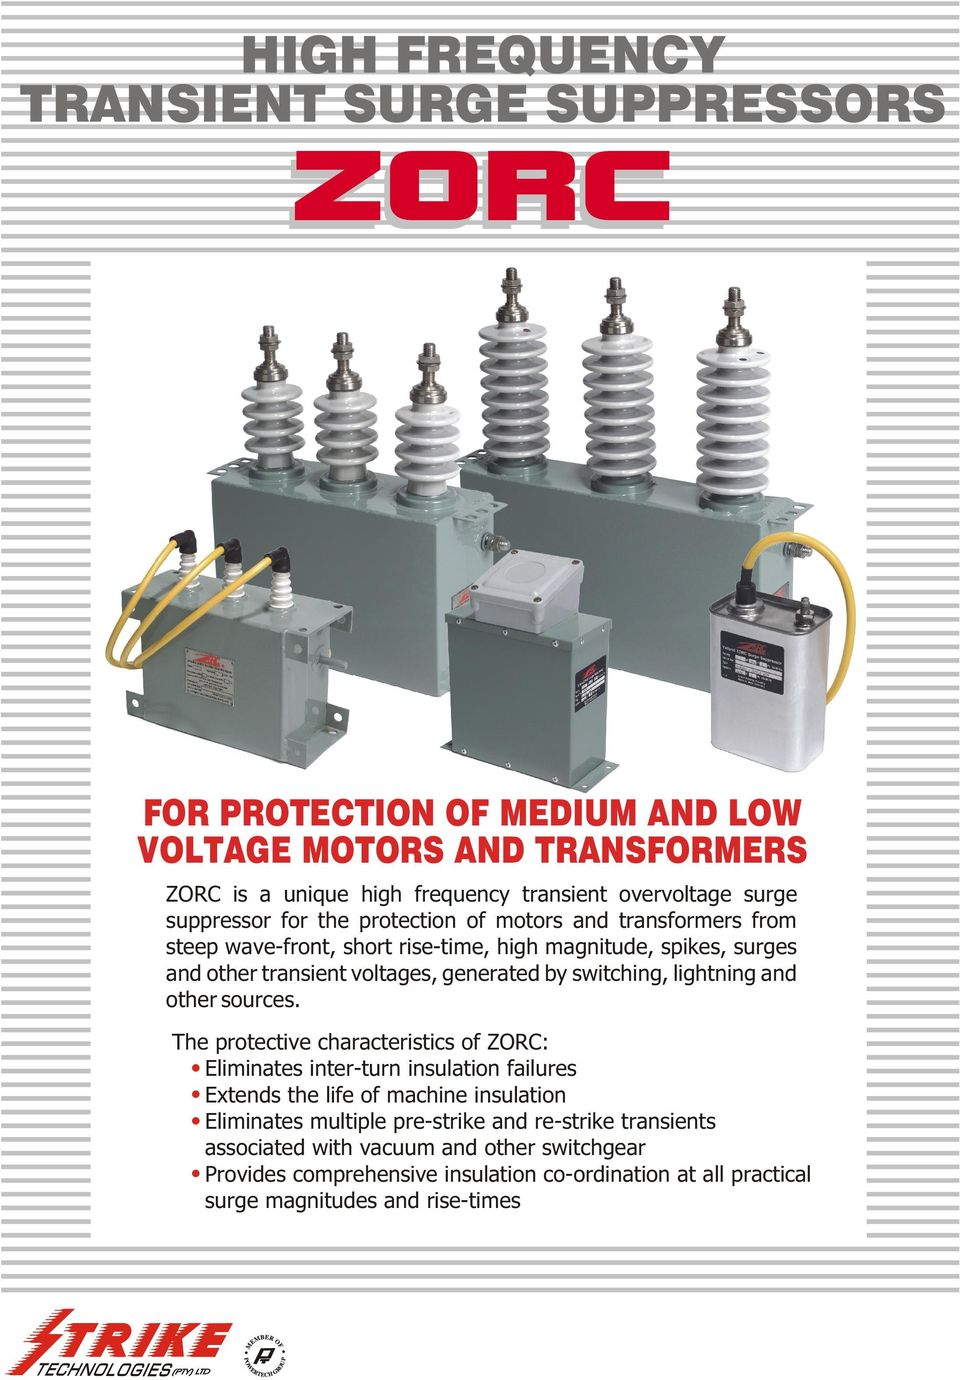 High Frequency Transient Surge Suppressors Pdf And Capacitor Switches Cause Most Singlephase Motor Malfunctions Switching Lightning Other Sources